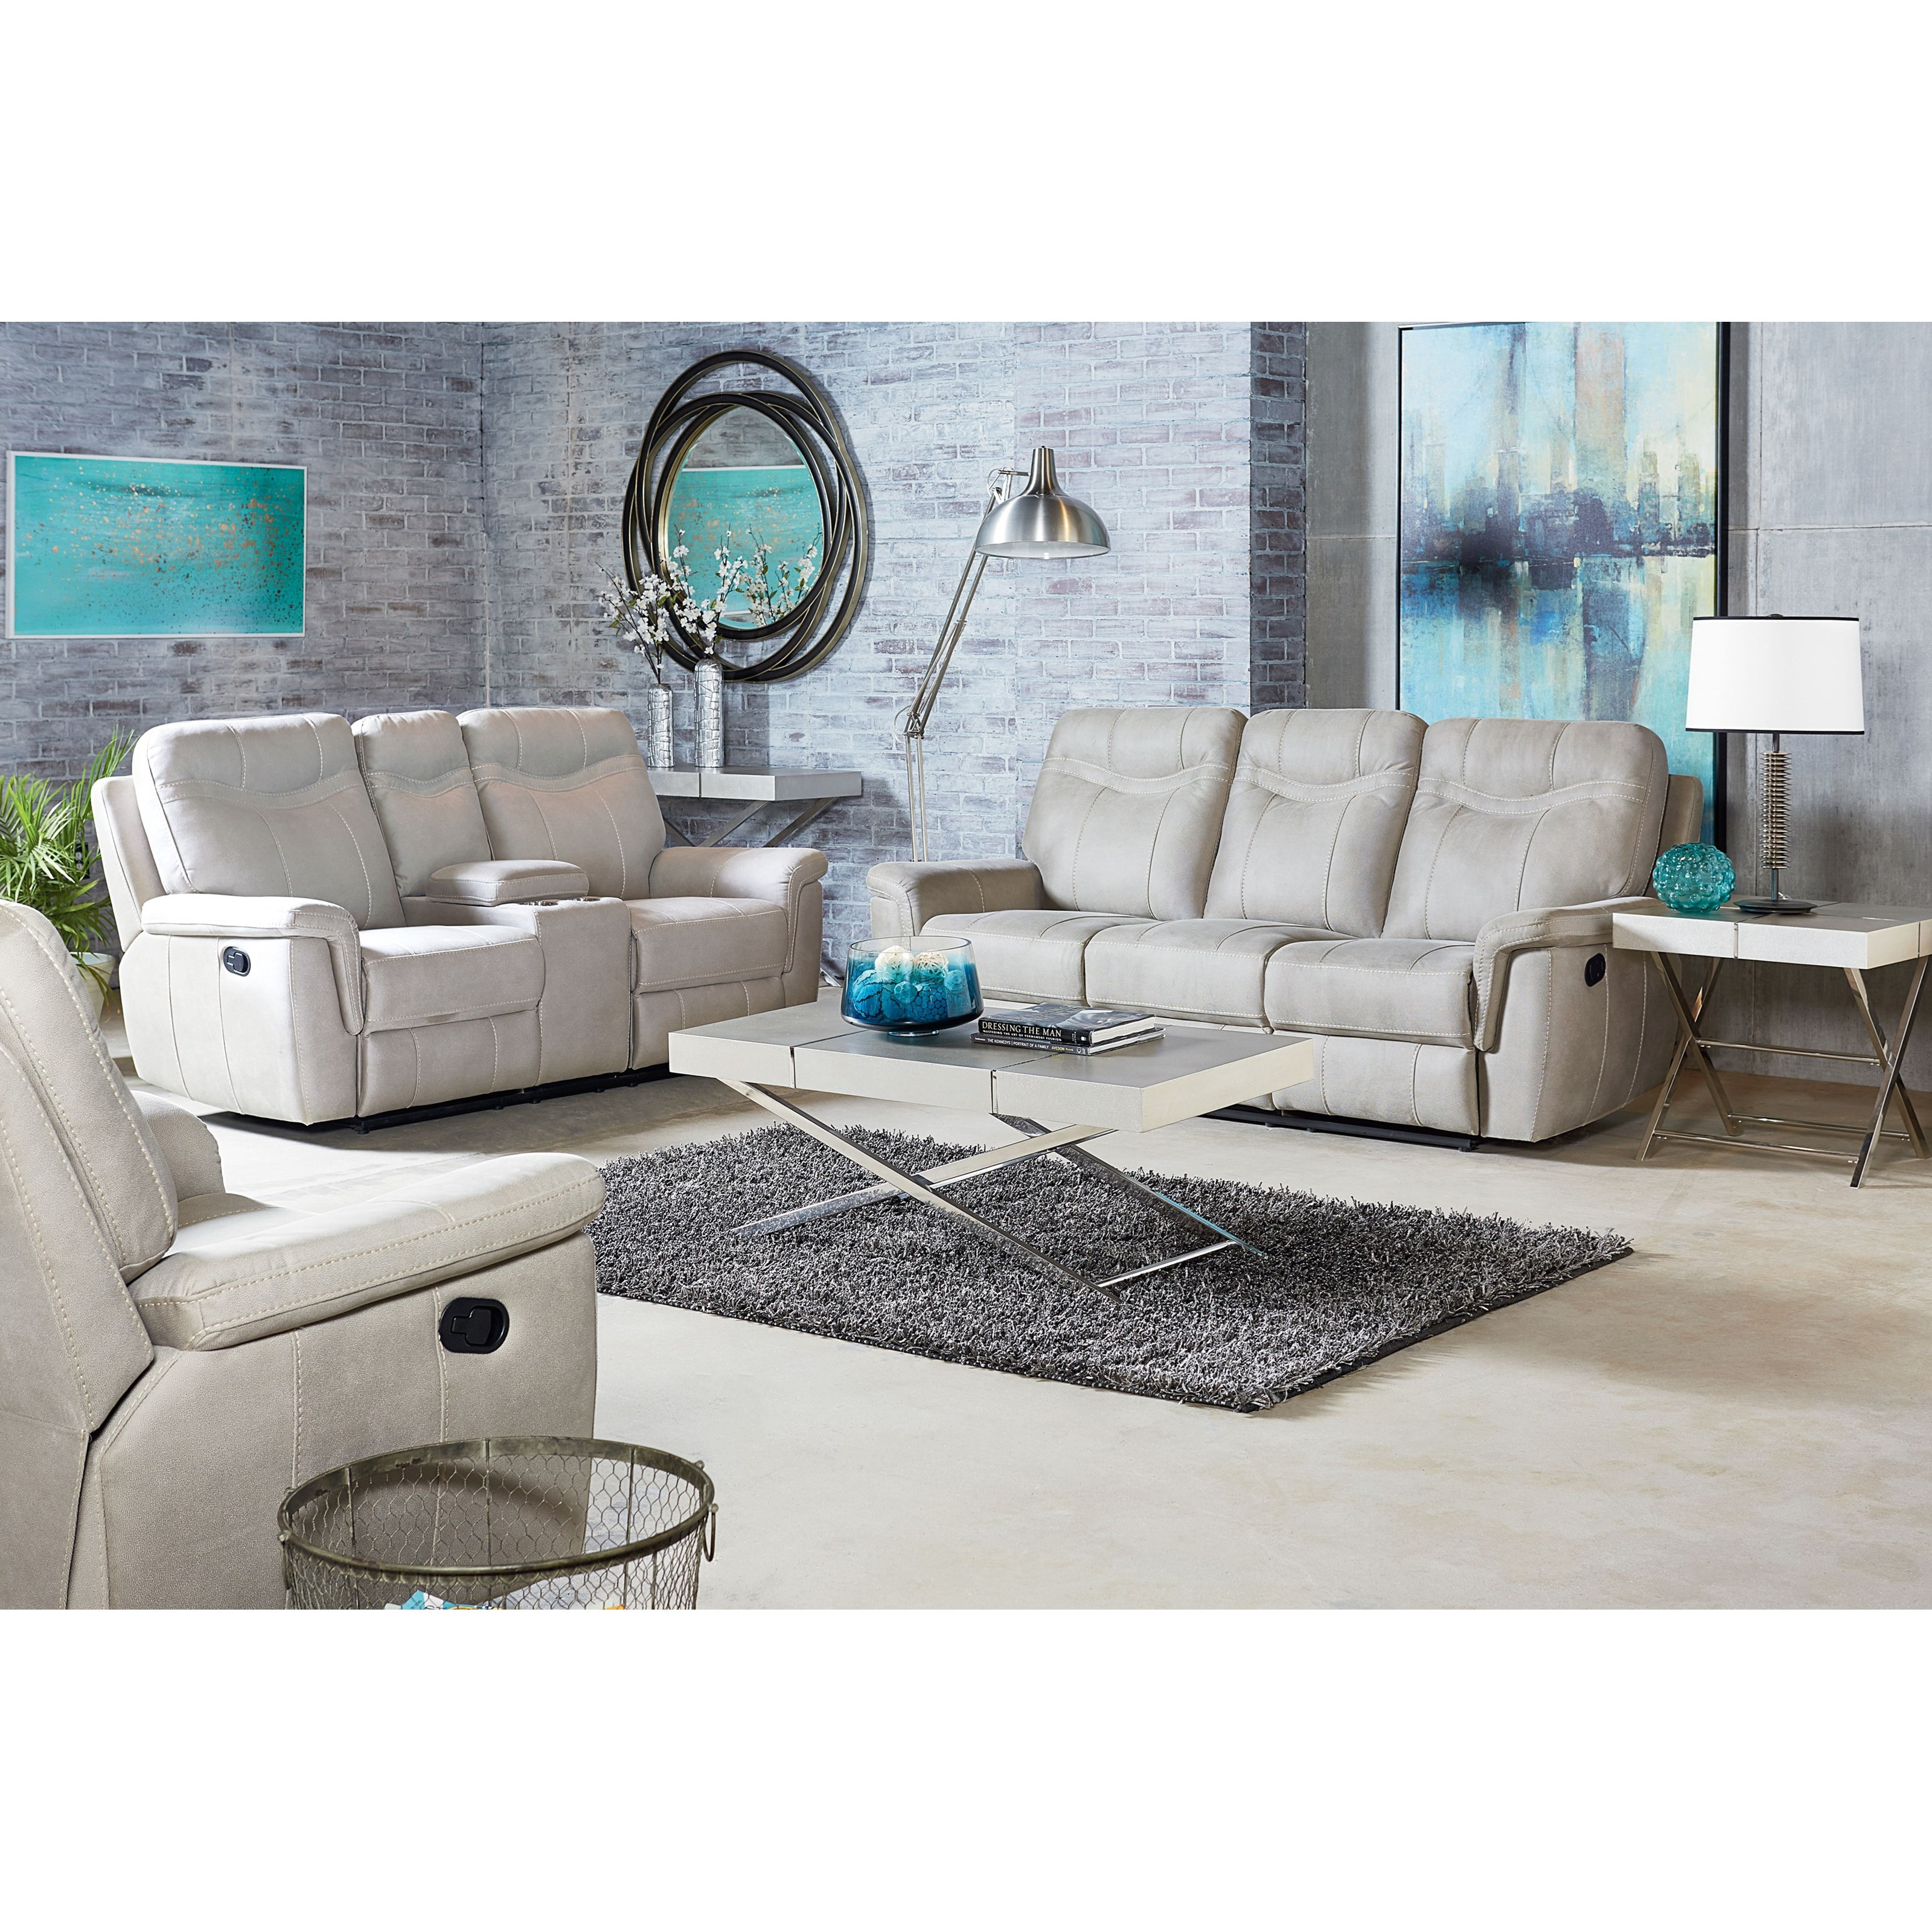 Standard Furniture Boardwalk Reclining Living Room Group - Item Number: 401700 Reclining Living Room Group